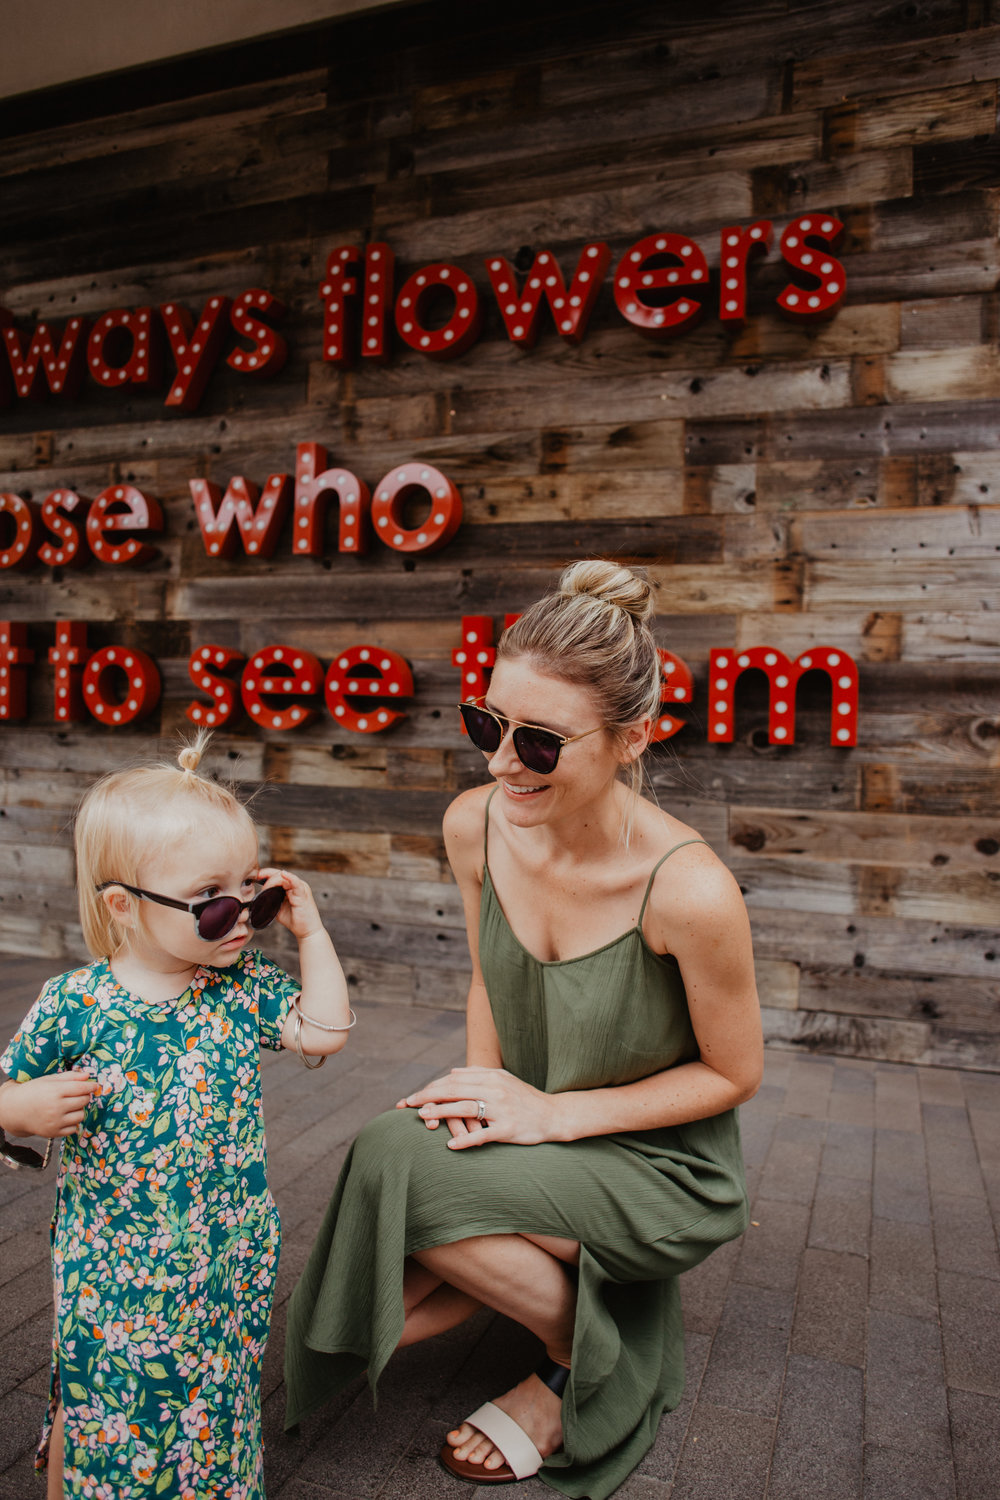 Zenni Optical - order prescription glasses-sunglasses online, inexpensive kids sunglasses, inexpensive prescription sunglasses